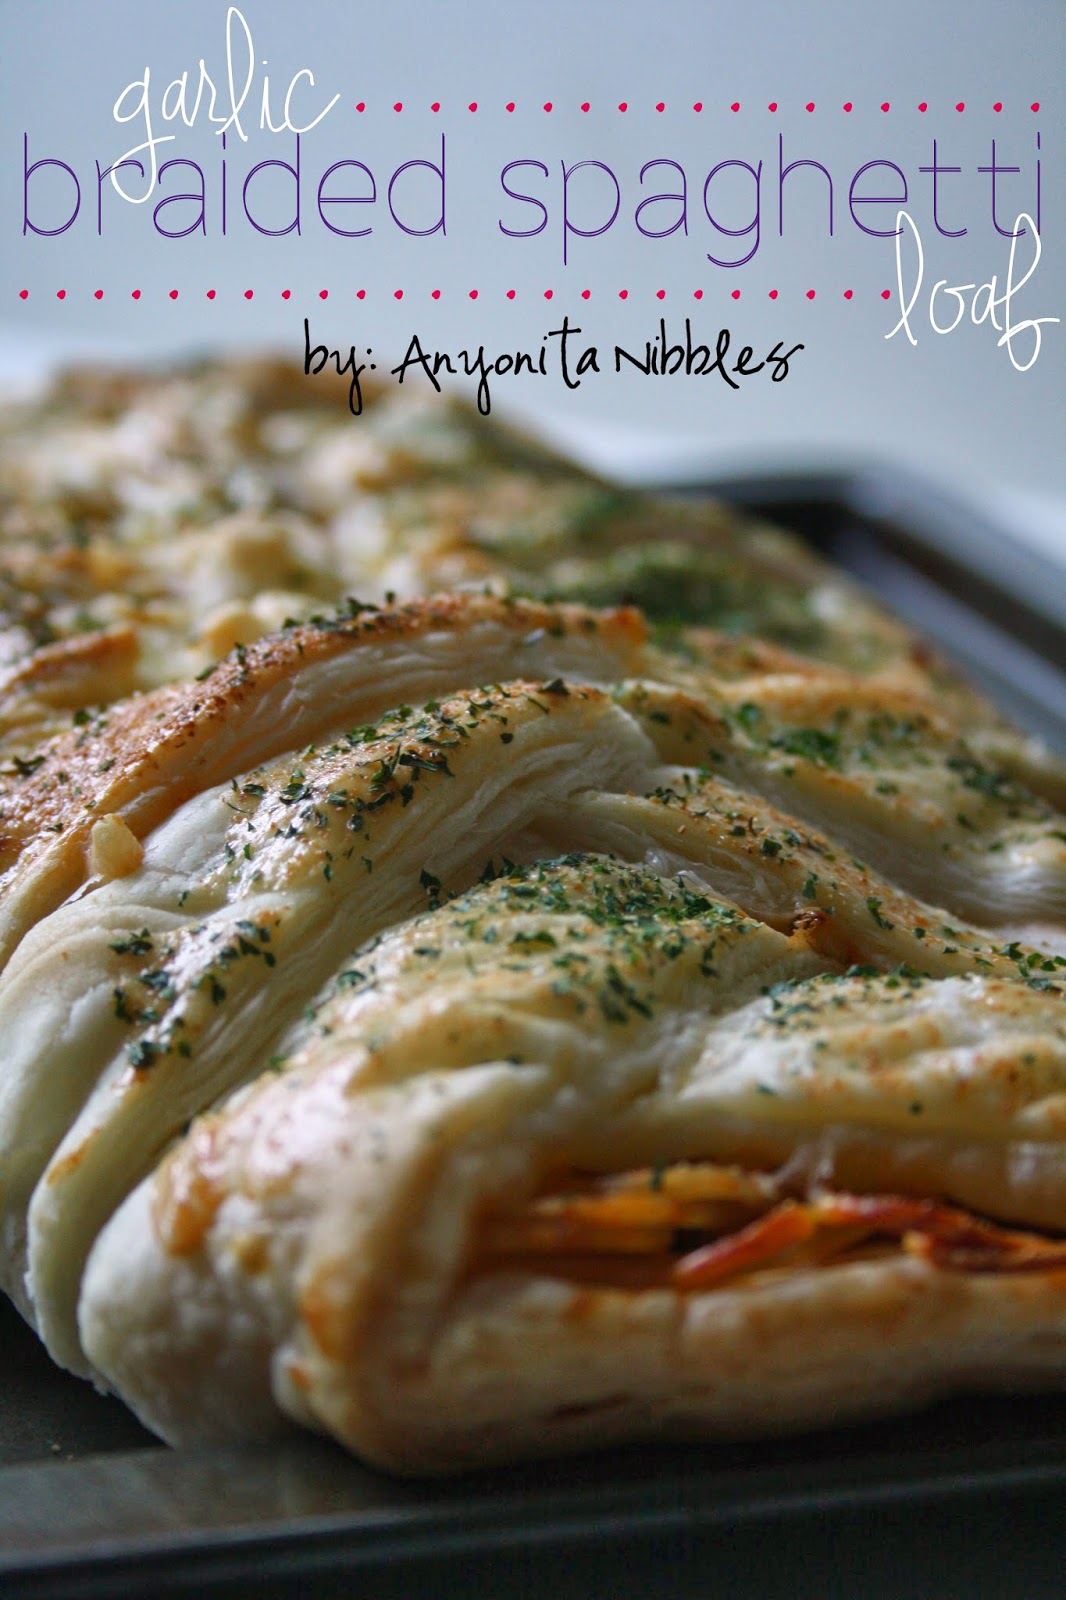 Close up of garlic braided spaghetti loaf | Anyonita Nibbles